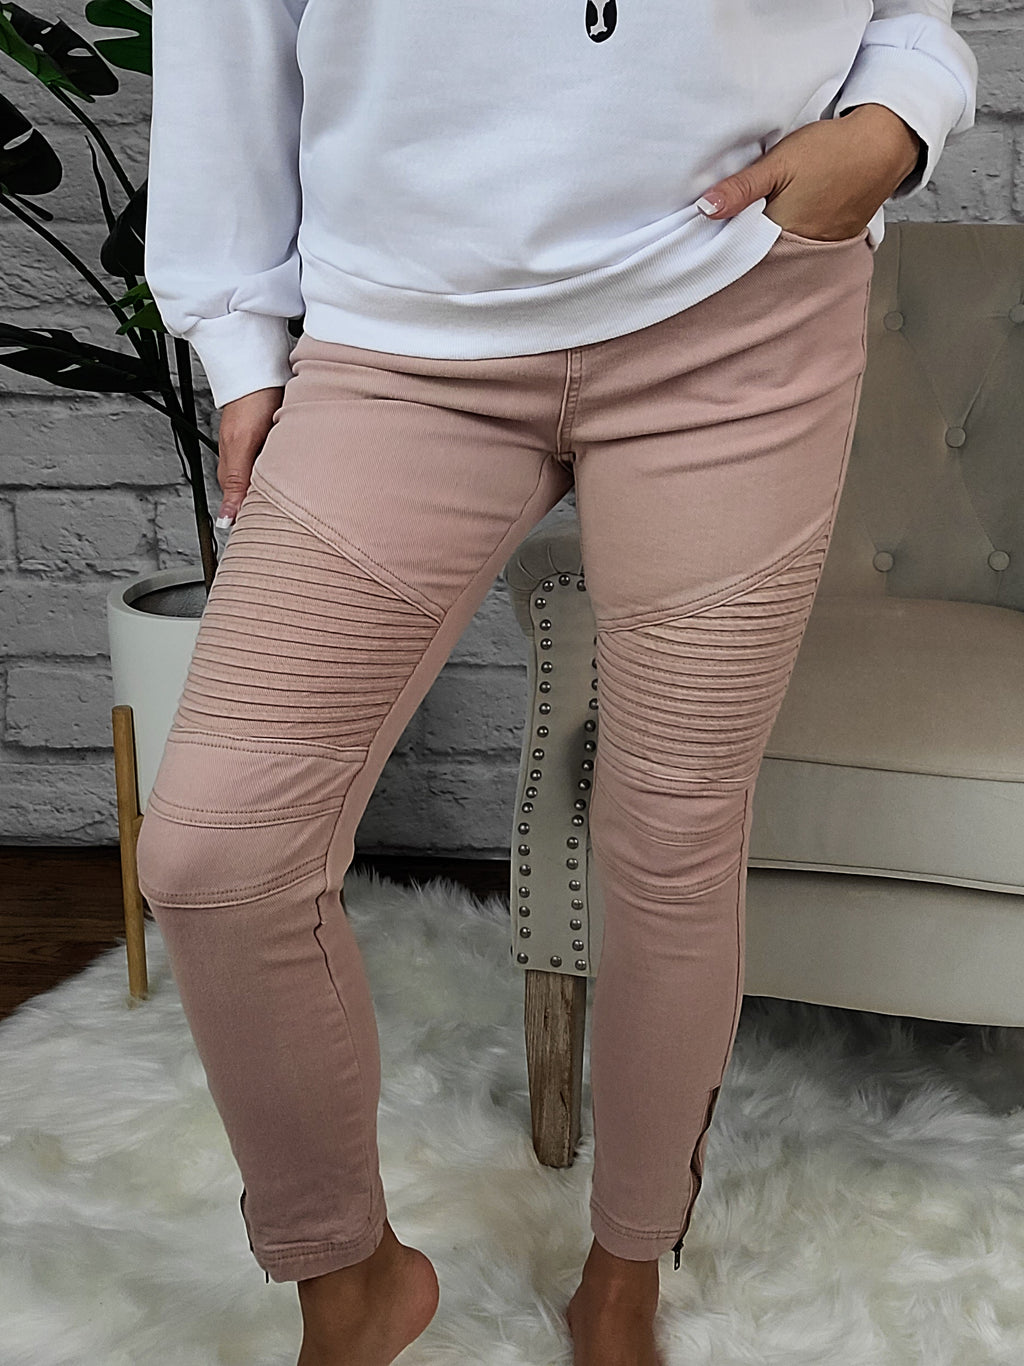 Take Your Time Blush Moto Leggings